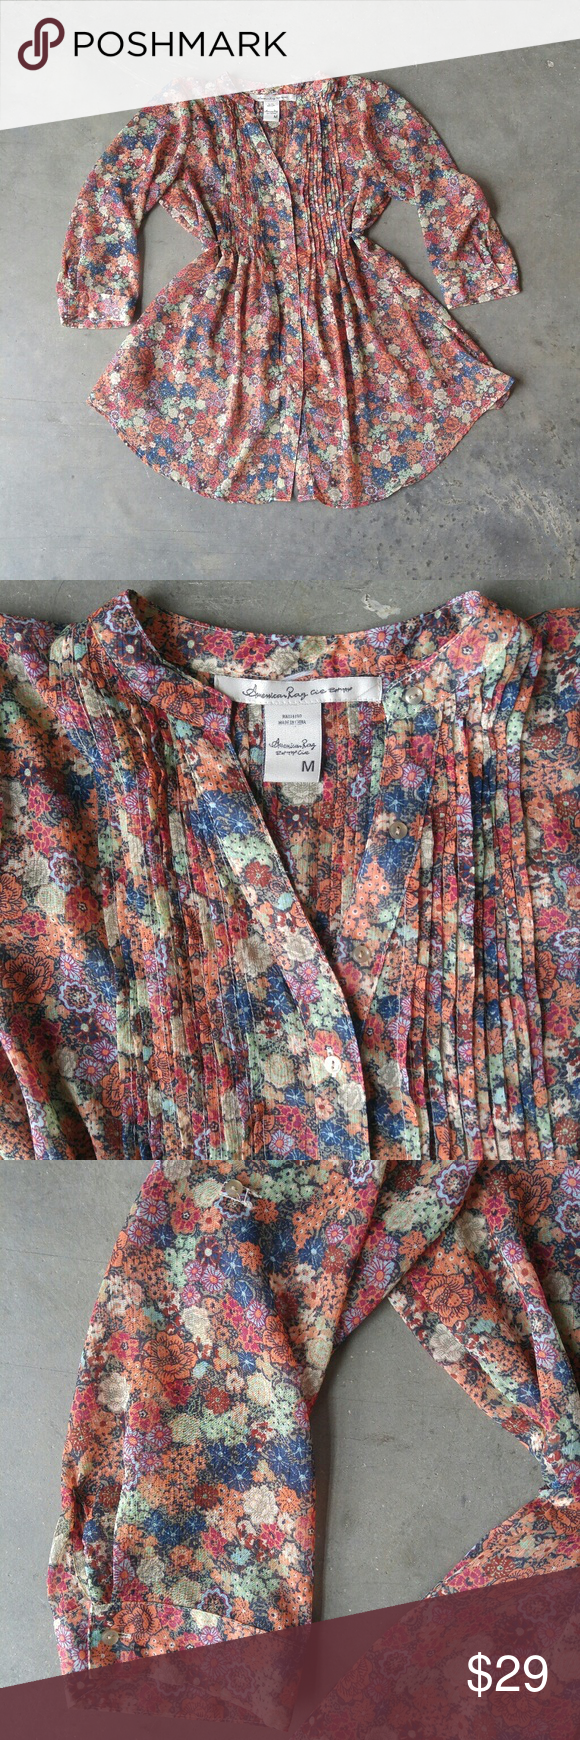 American Rag Button Down Floral Tunic American Rag blouse, size medium, in excellent condition! Sheer and floral print. Buttons down front. Tuxedo style pleats on front and back. Waist tie in back. Longer in front than in back because of waist tie. So perfect for spring! Please ask any questions. No trades. Make a reasonable offer. Thanks! American Rag Tops Tunics